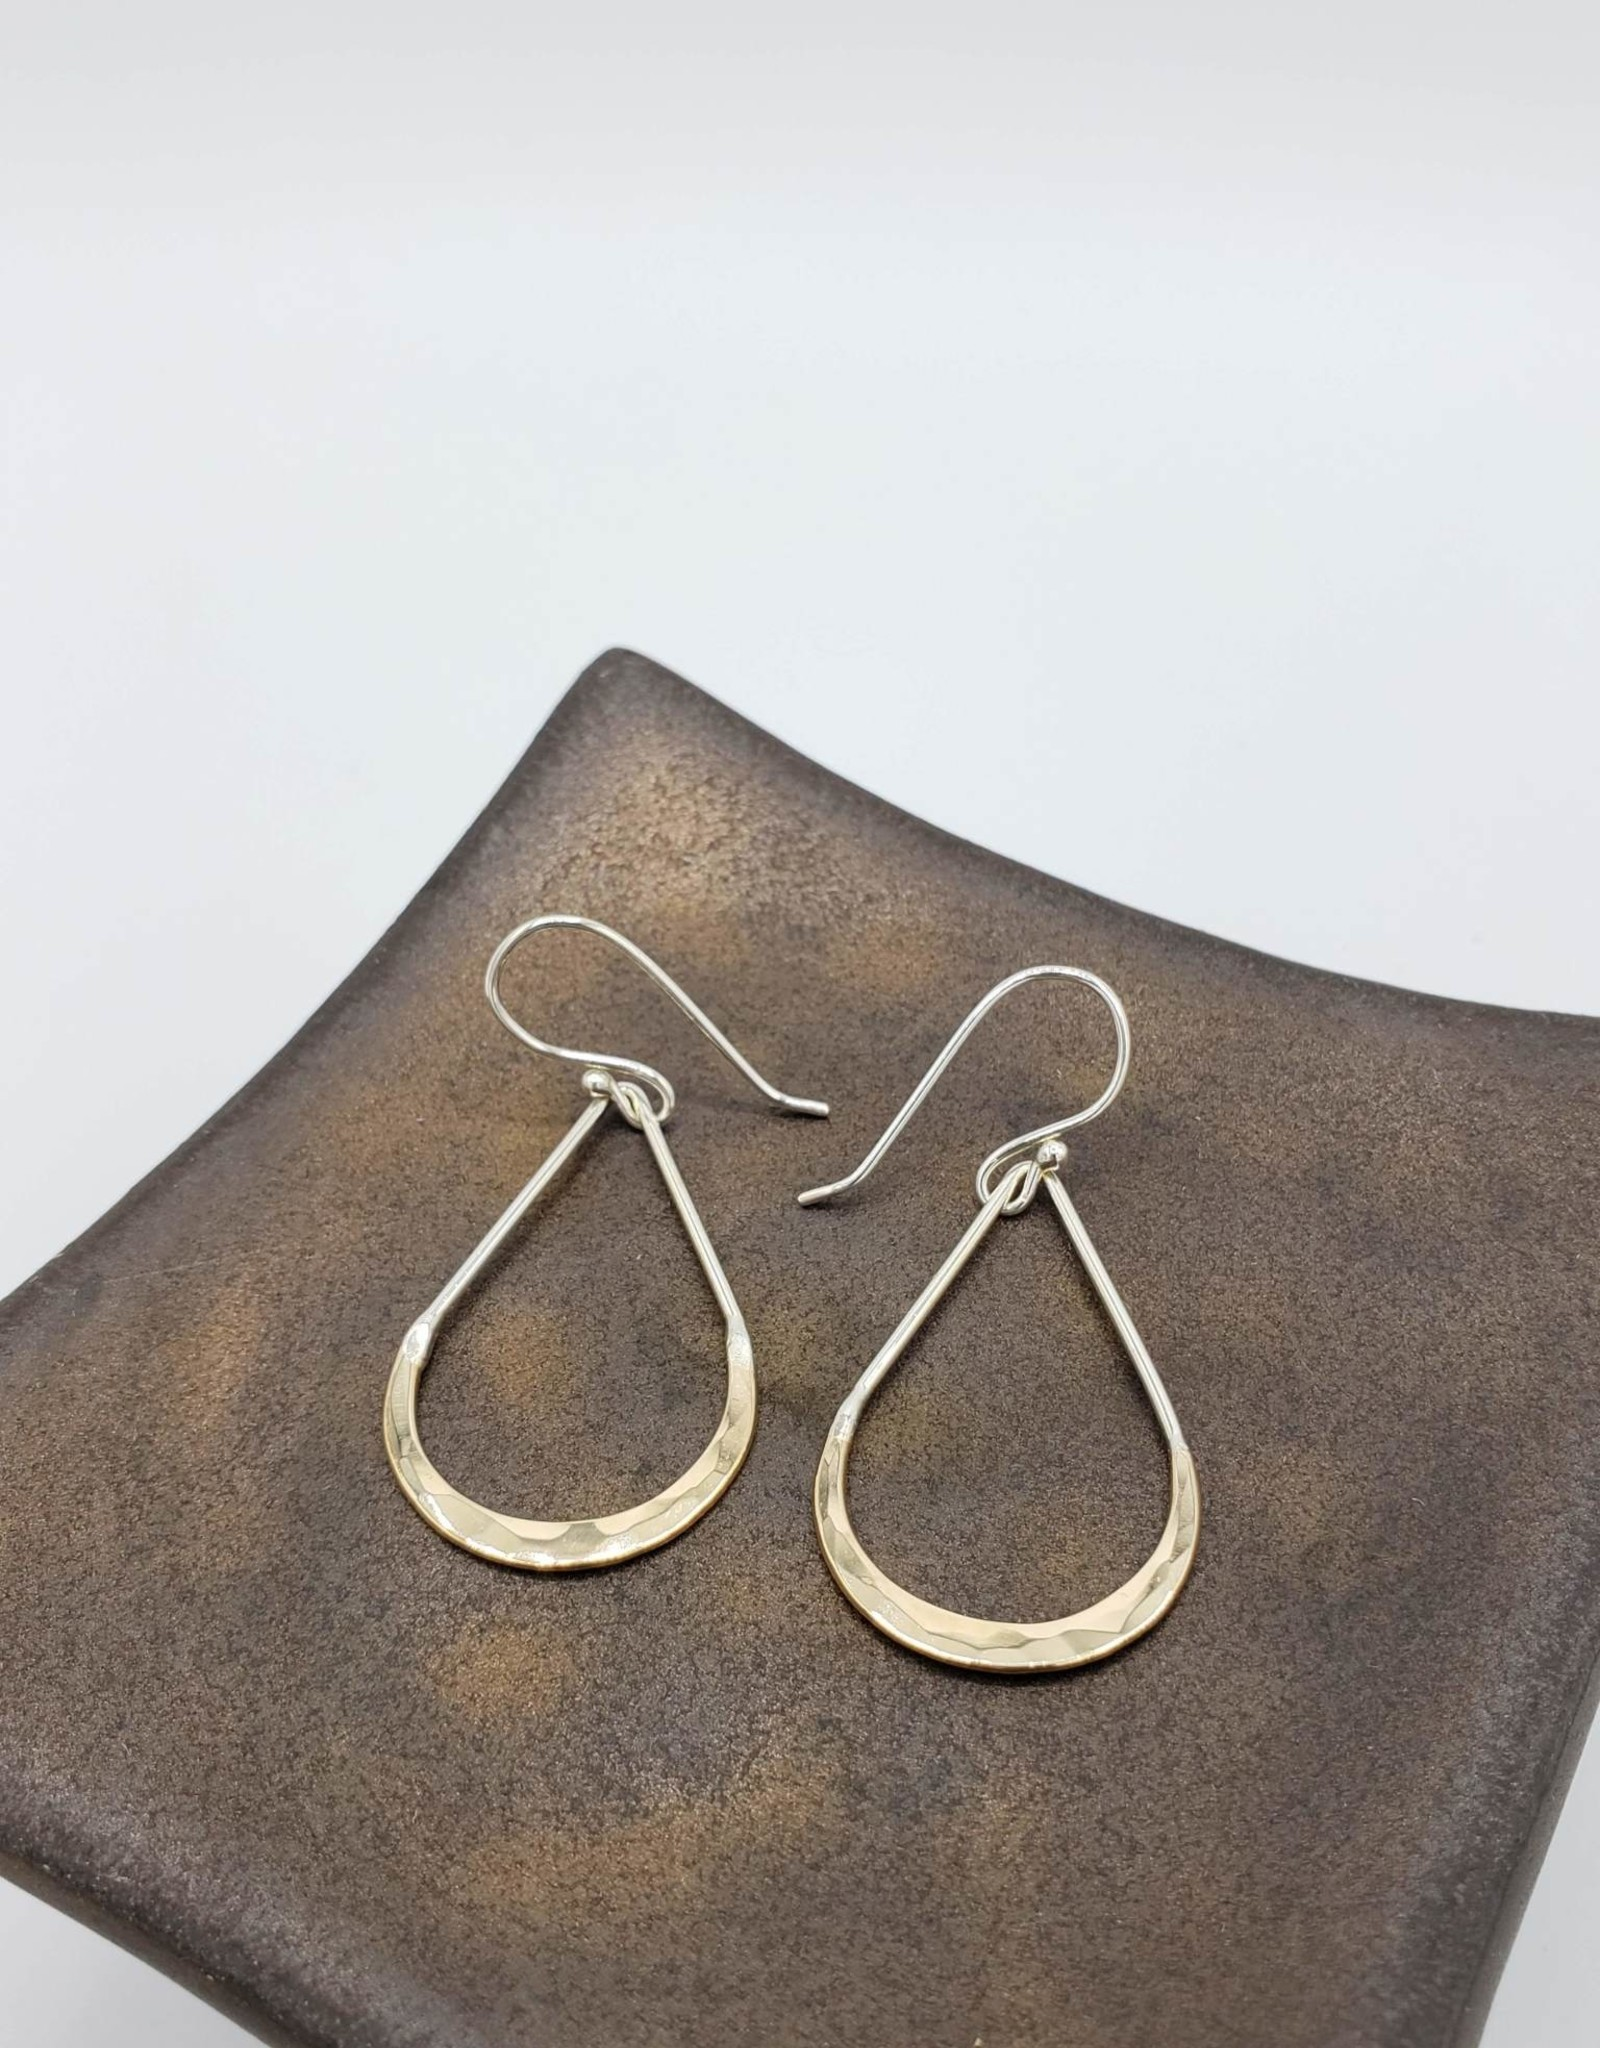 Peter James Jewelry Sterling Teardrop w/ Gold Fill Arch, Small - Peter James Jewelry